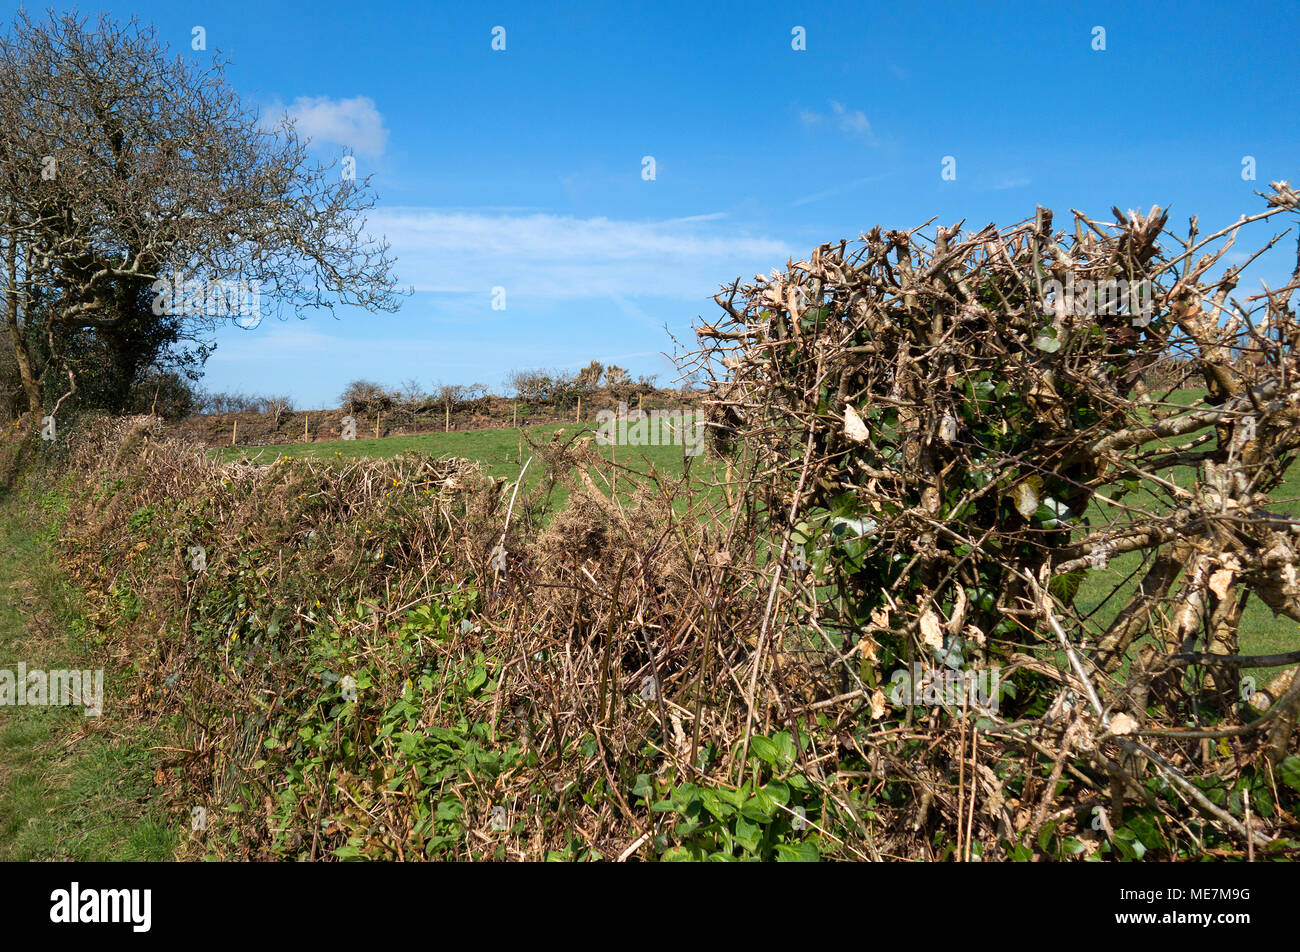 coppiced and trimmed hedgerow in the cornish countryside, england, britain, uk - Stock Image